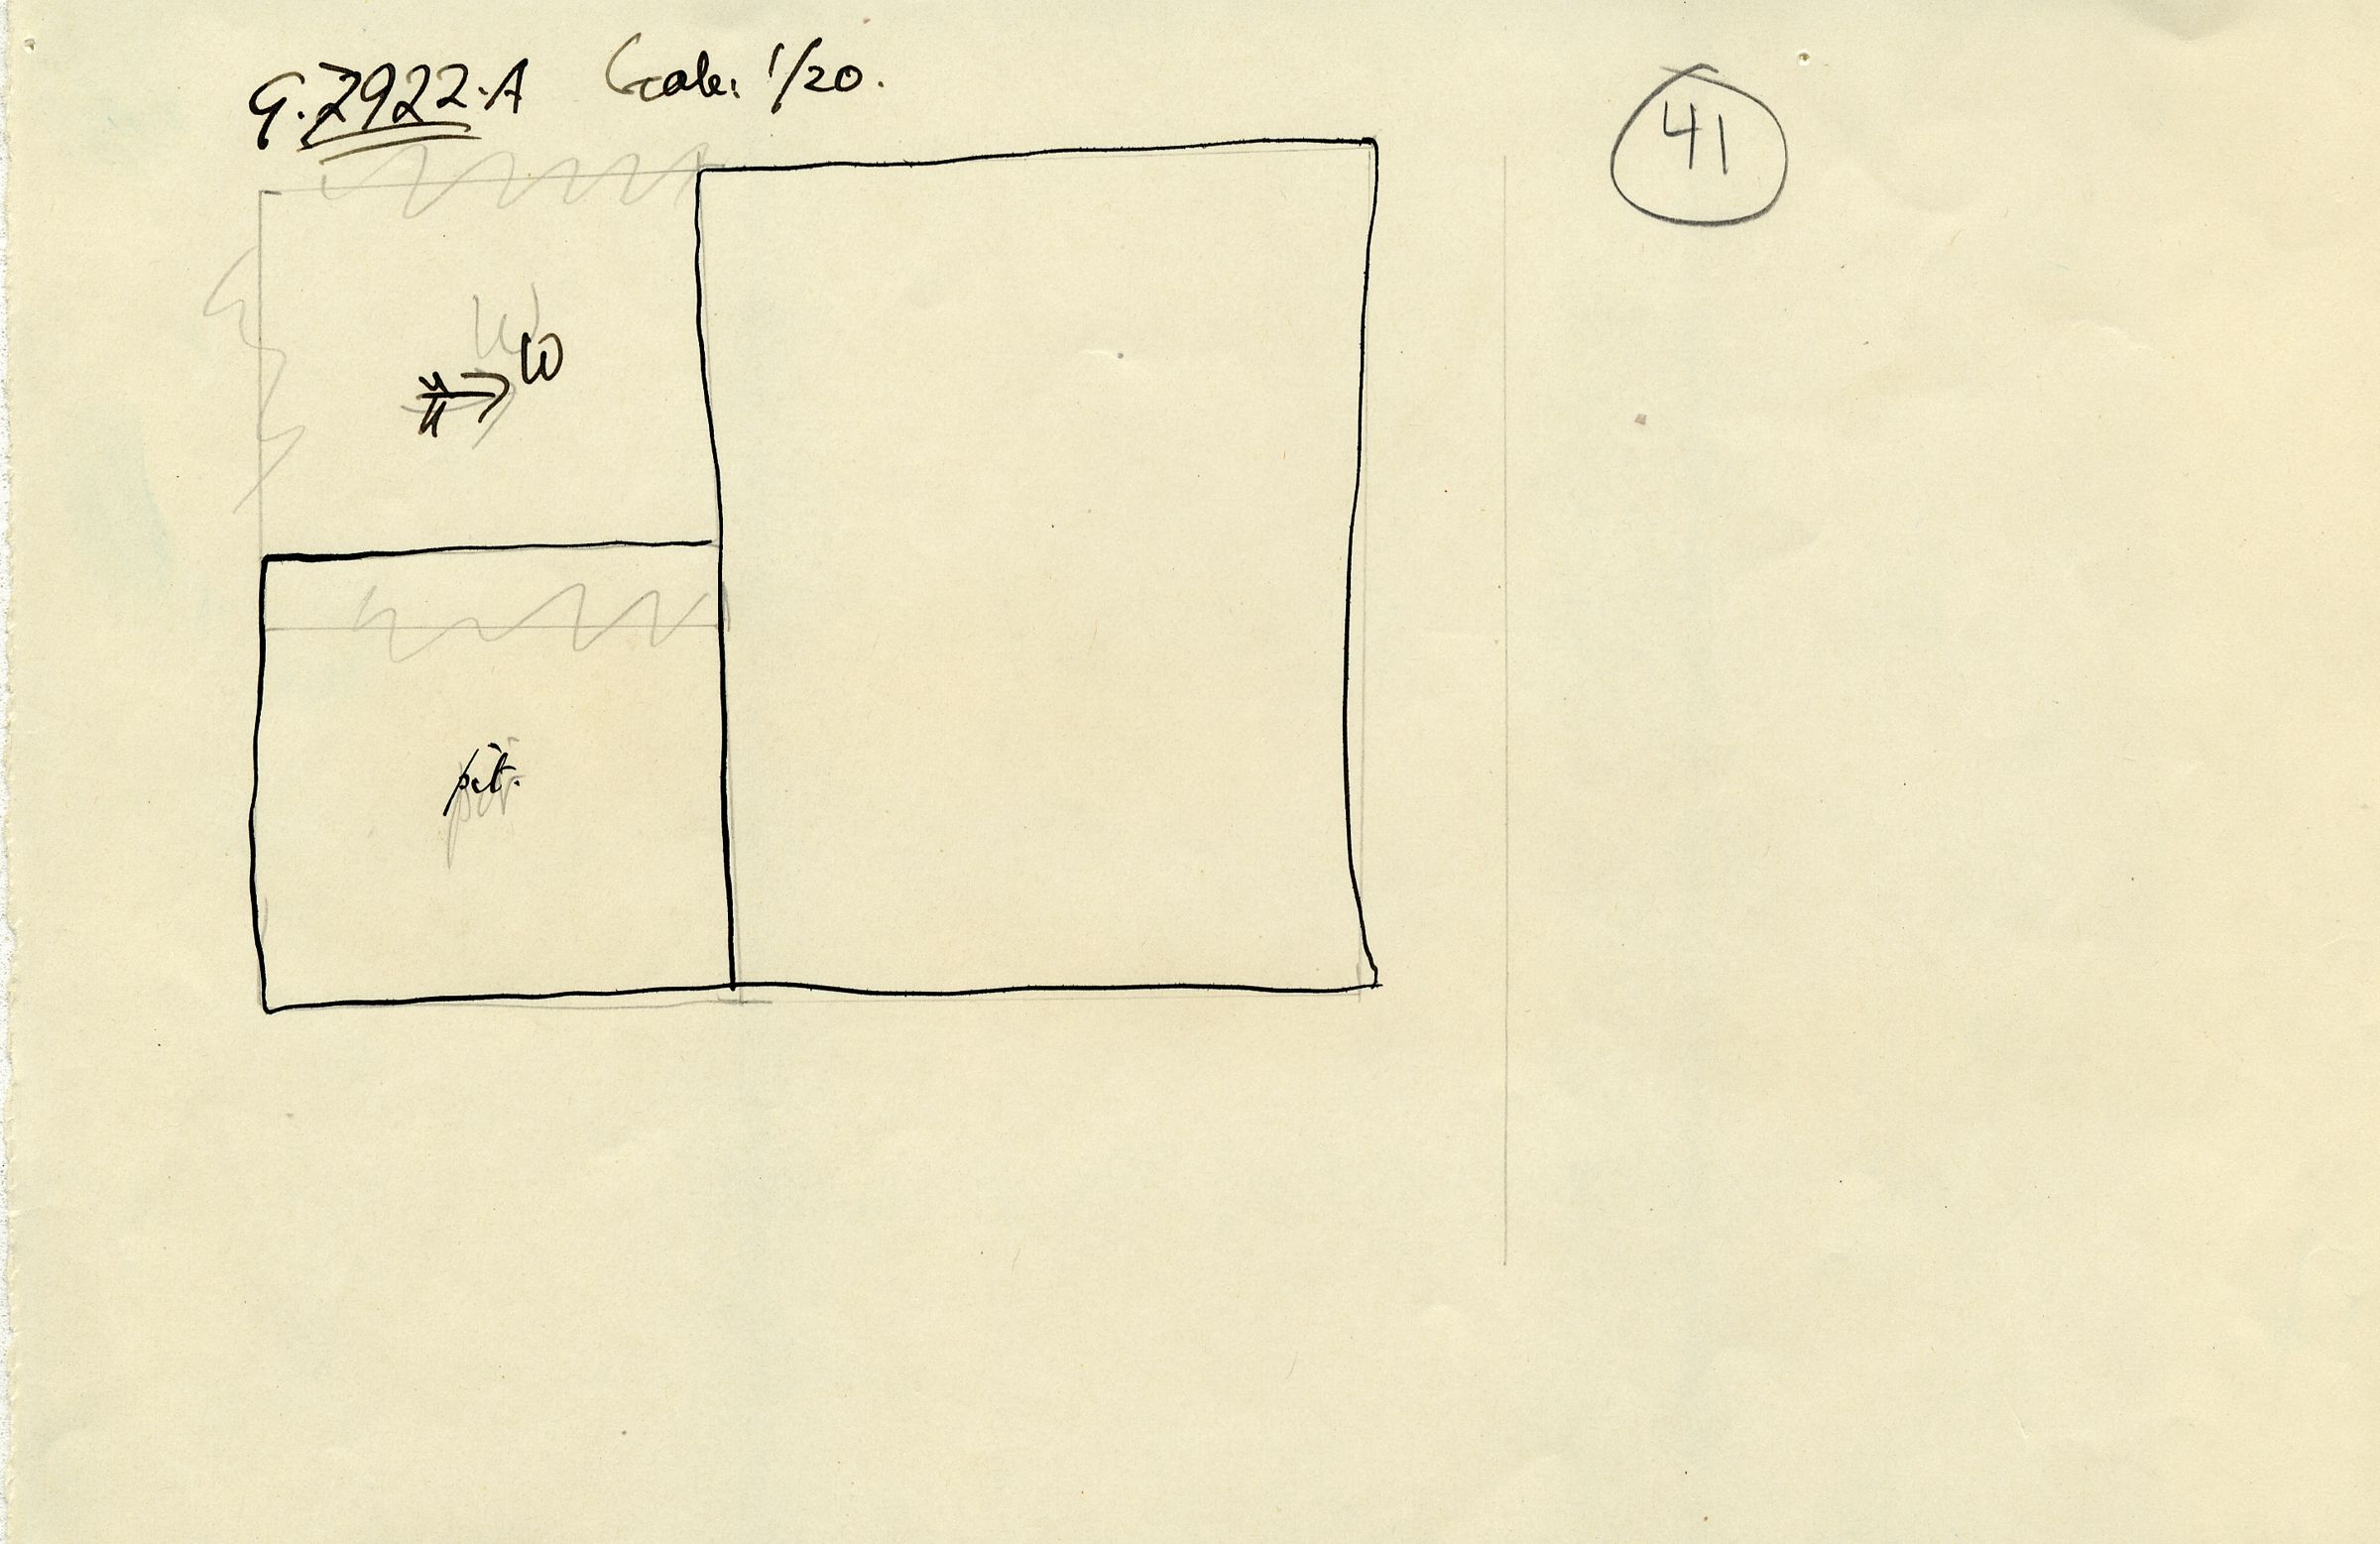 Maps and plans: G 7922, Shaft A